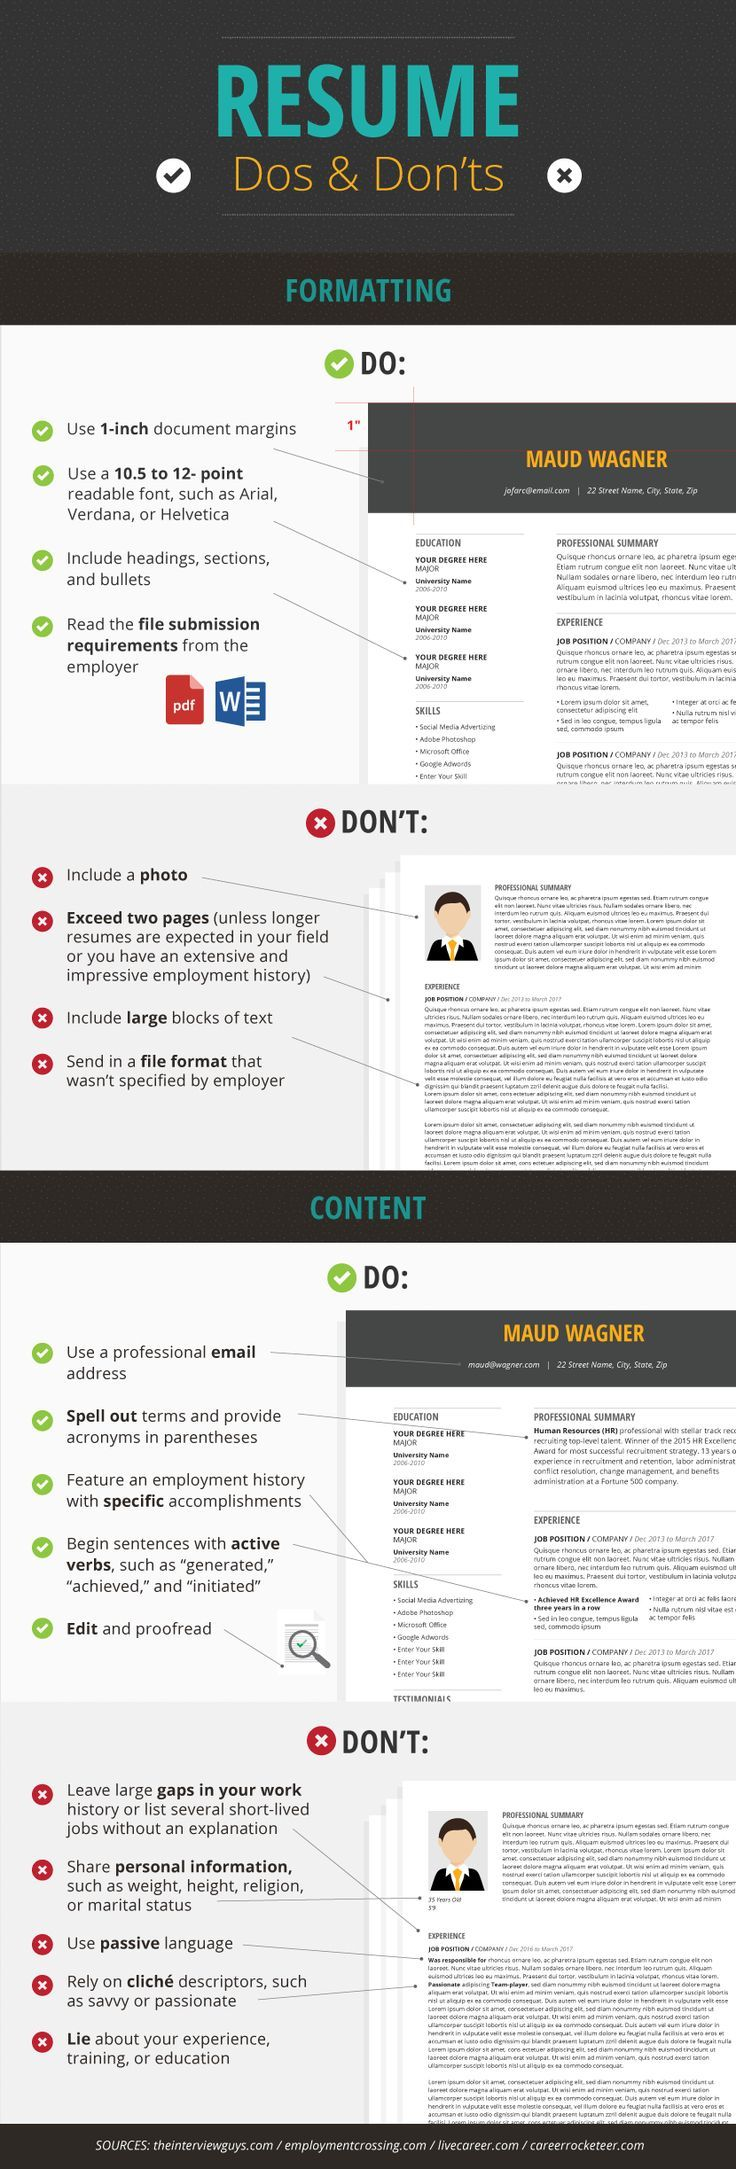 Resume Do's - Resume Dos and Don'ts: How to Get the Interview